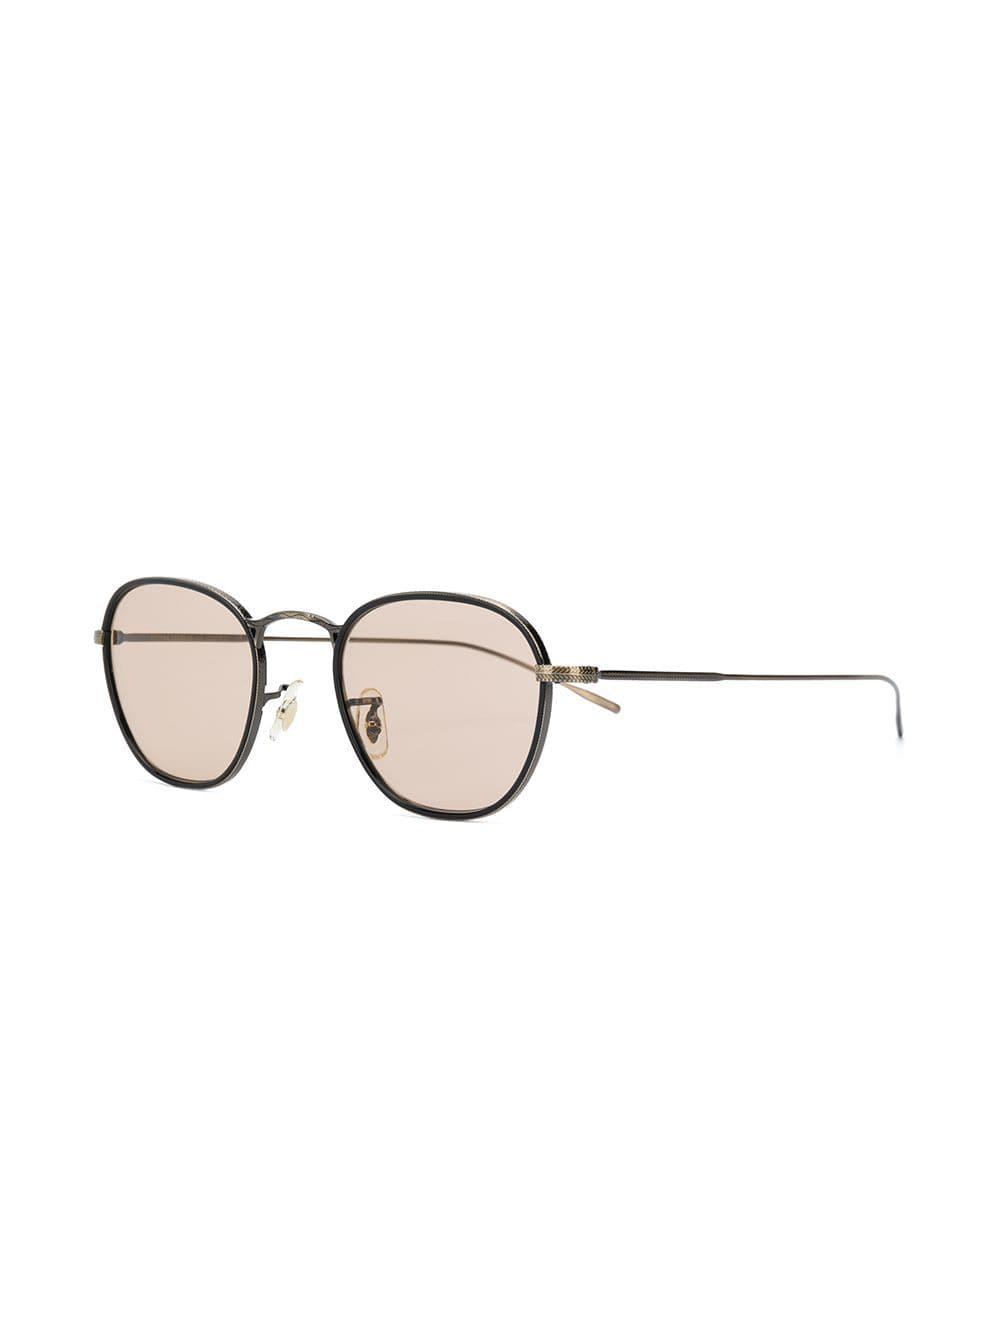 c2b5d7505ec Lyst - Oliver Peoples Eoin Embossed Frame Glasses in Metallic